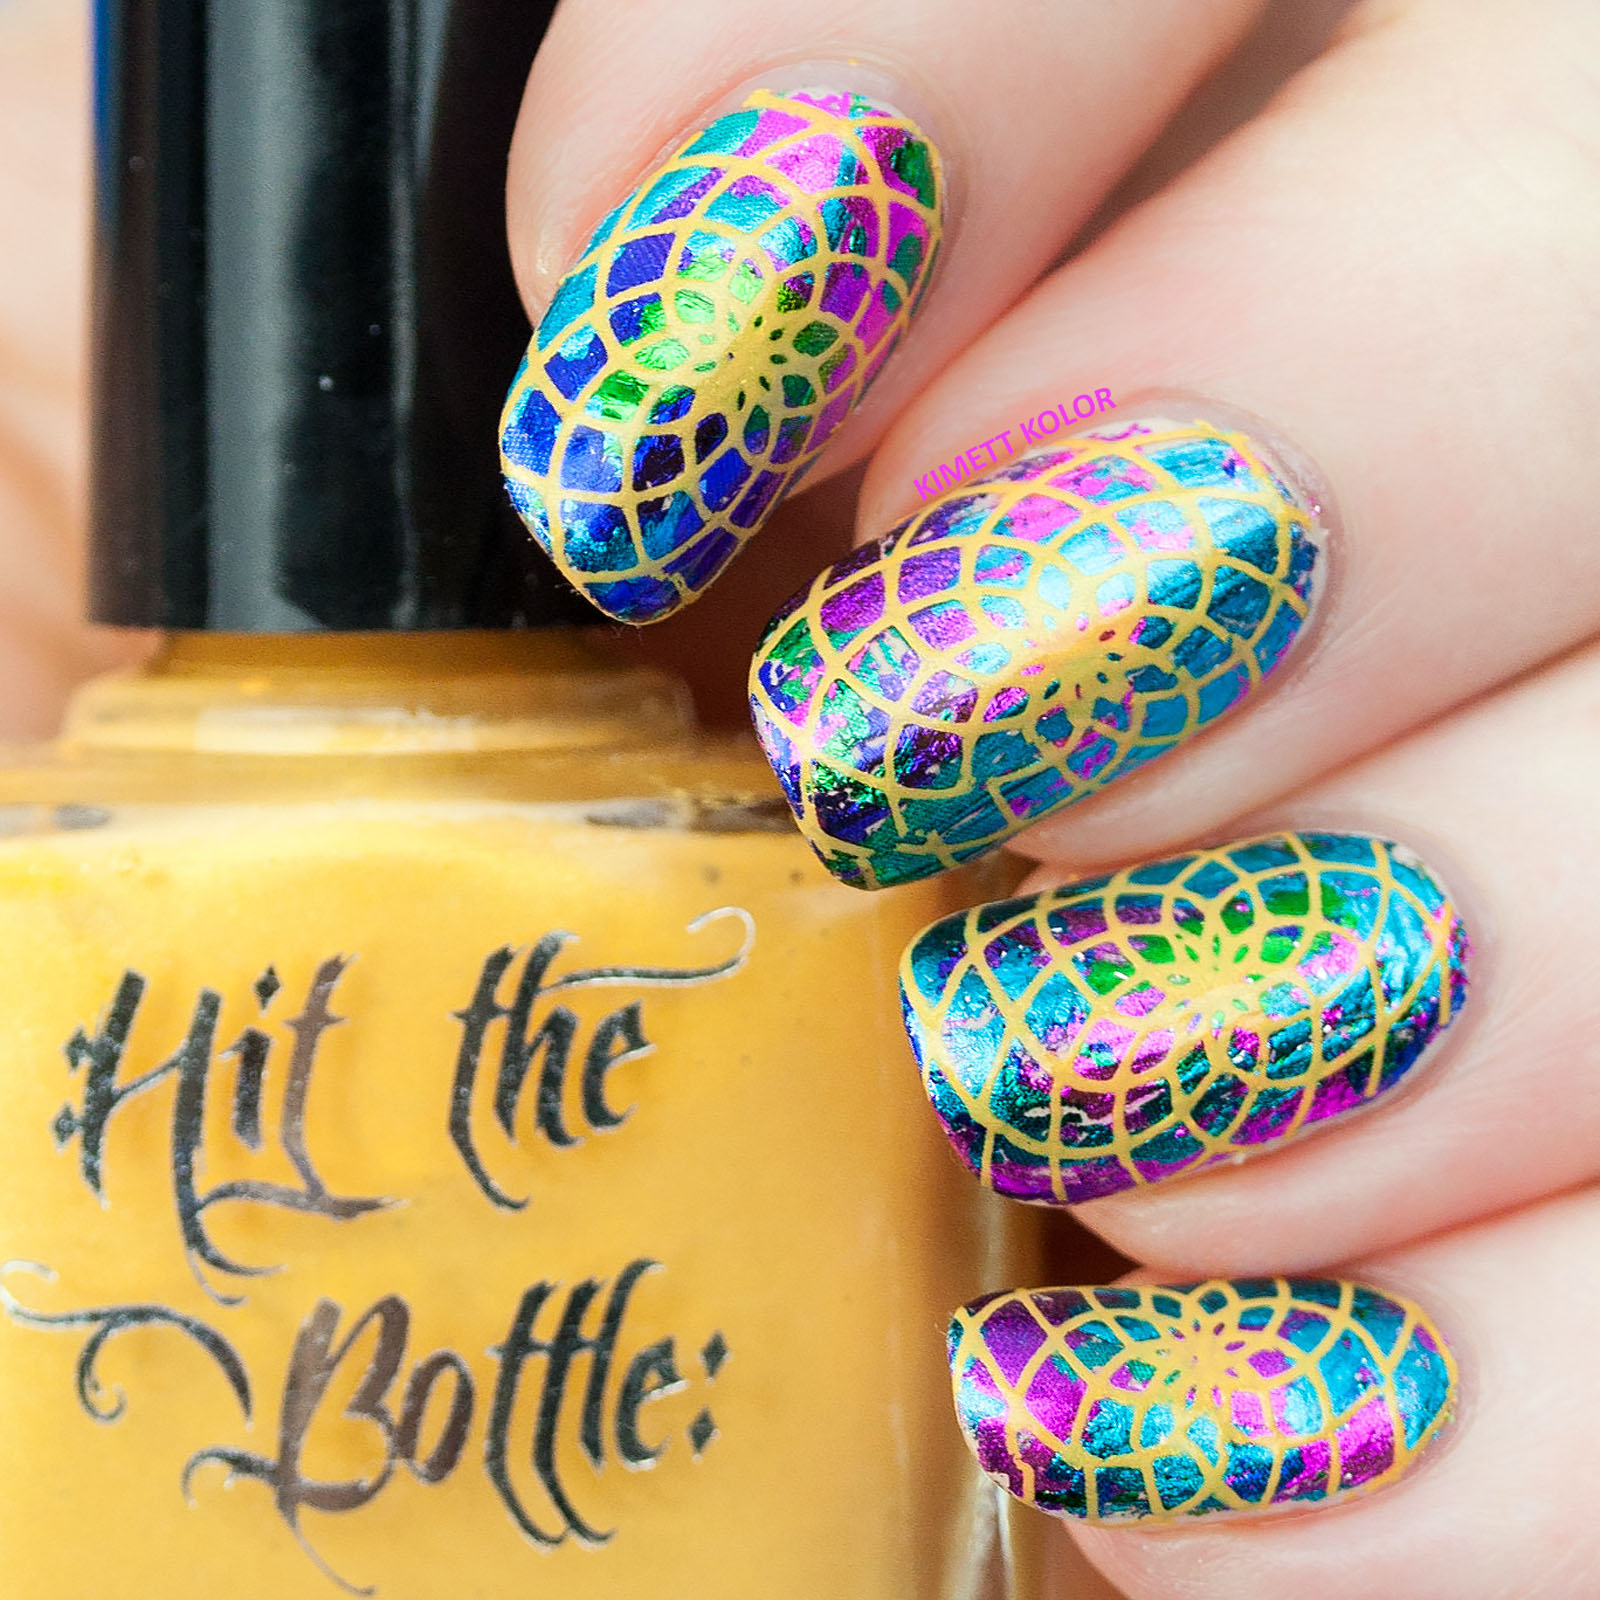 nail art stamping over foil with Hit The Bottle